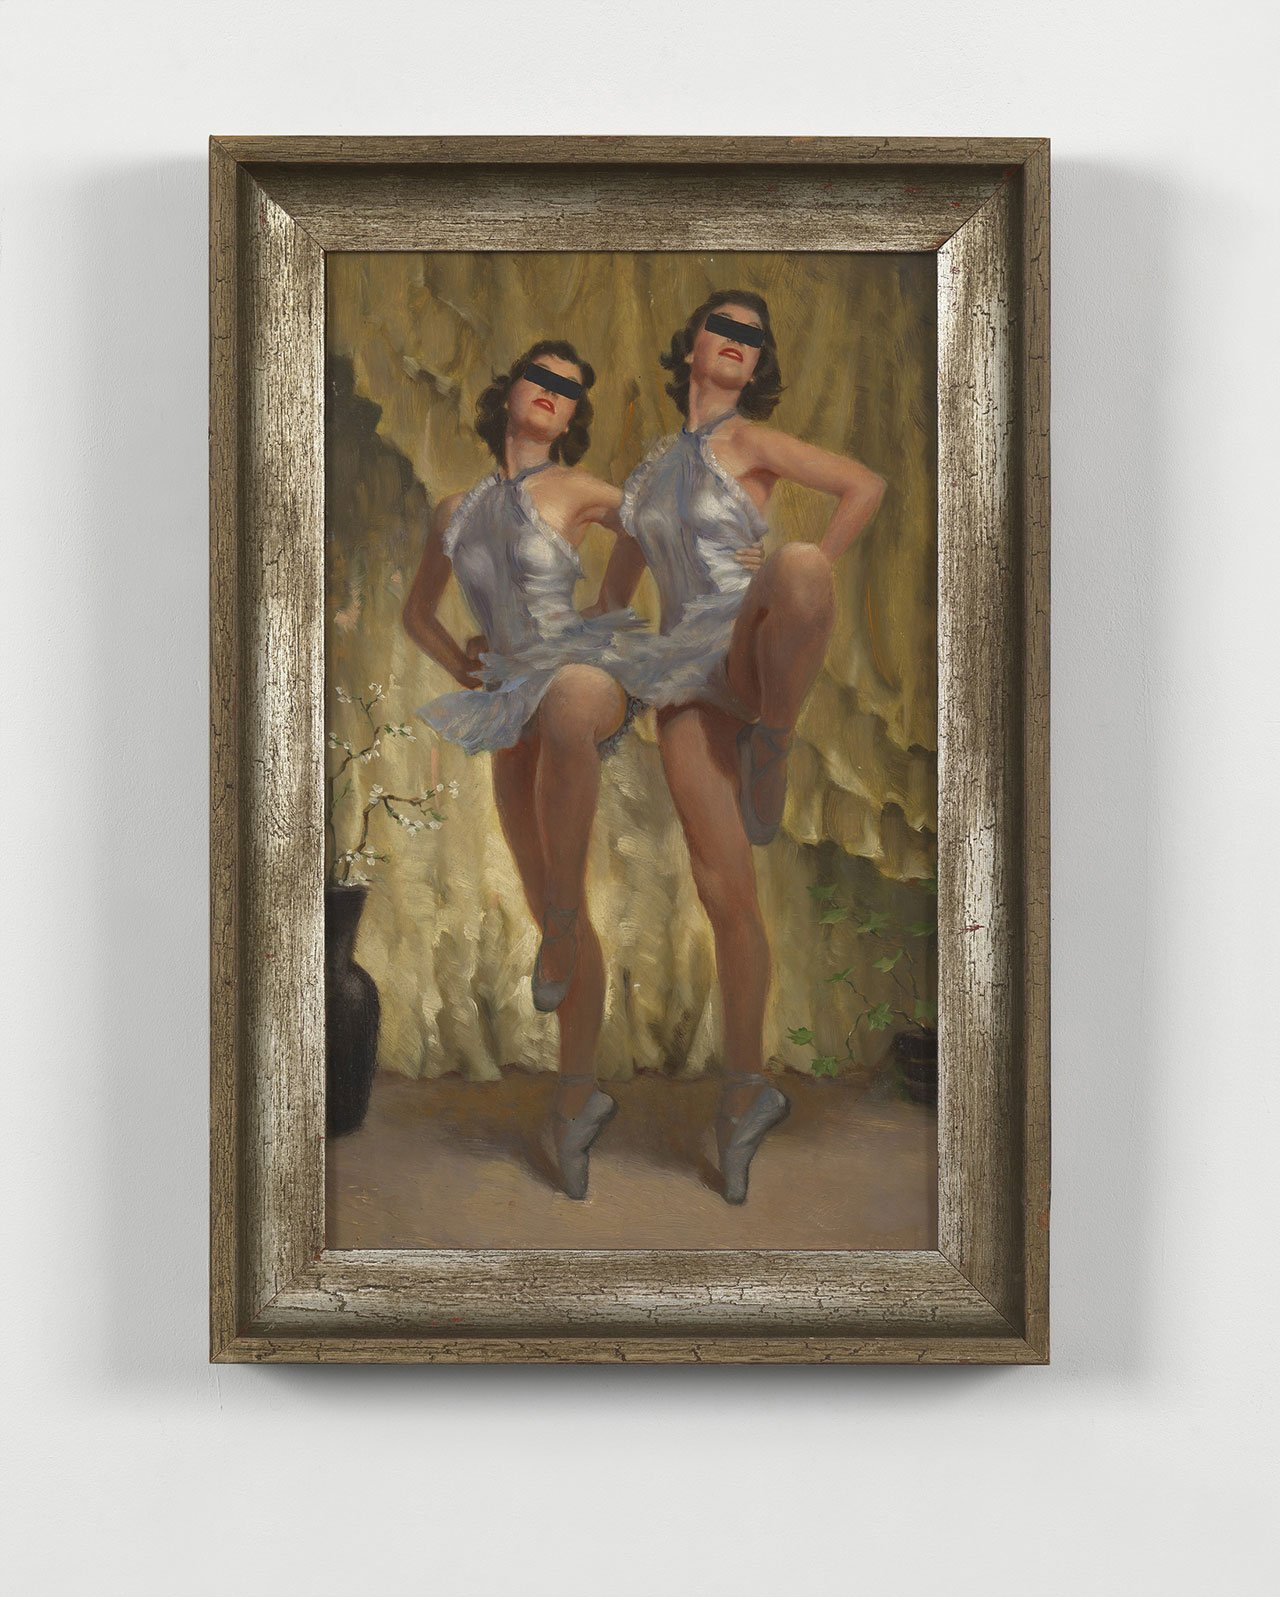 Hans-Peter Feldmann, Untitled, Oil on canvas, 51 x 34 cm. Photo courtesy Simon Lee Gallery Hong Kong and the artist.